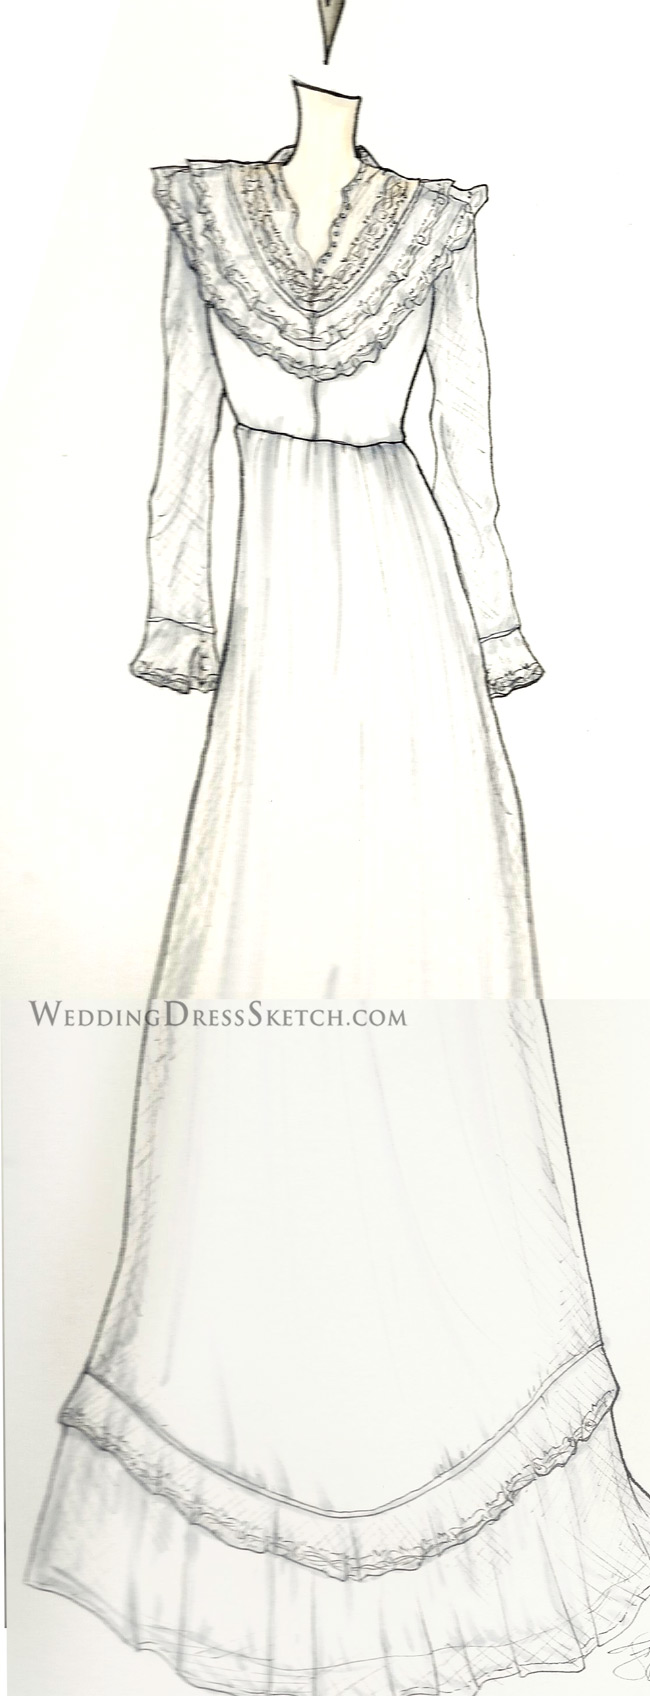 Vintage Wedding Gown Illustration